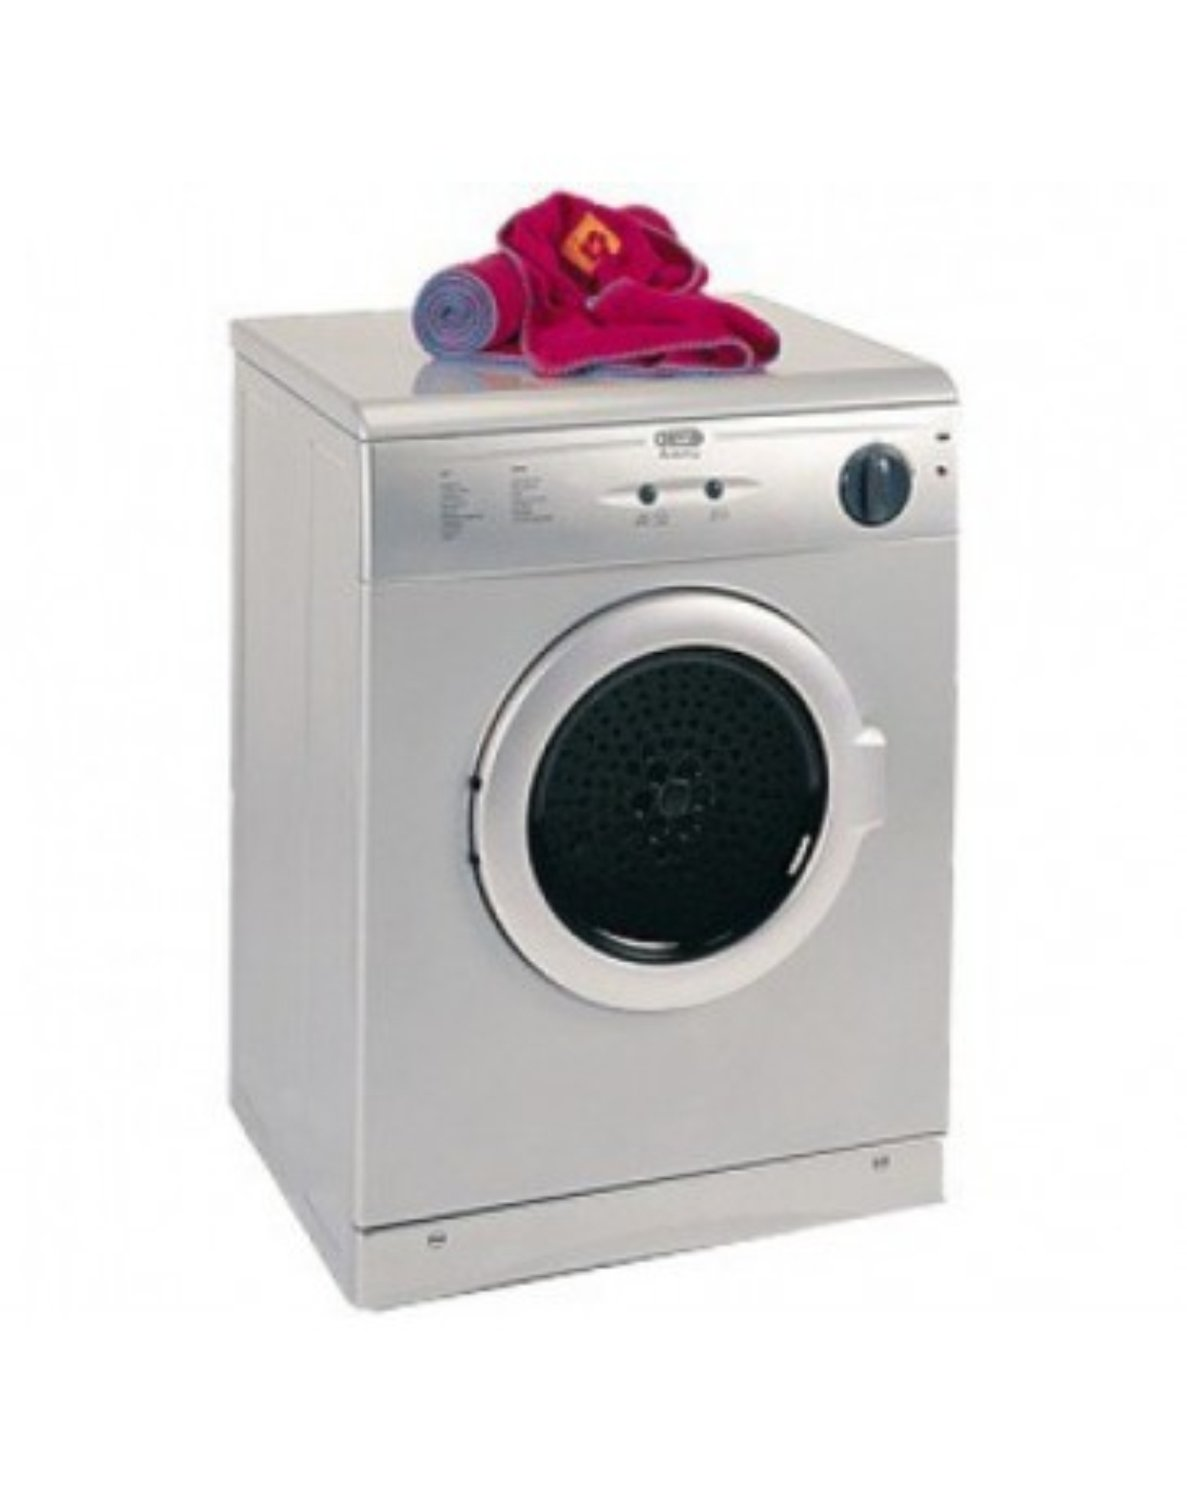 DEFY DTD259 SERIES 6 AUTODRYER METALLIC